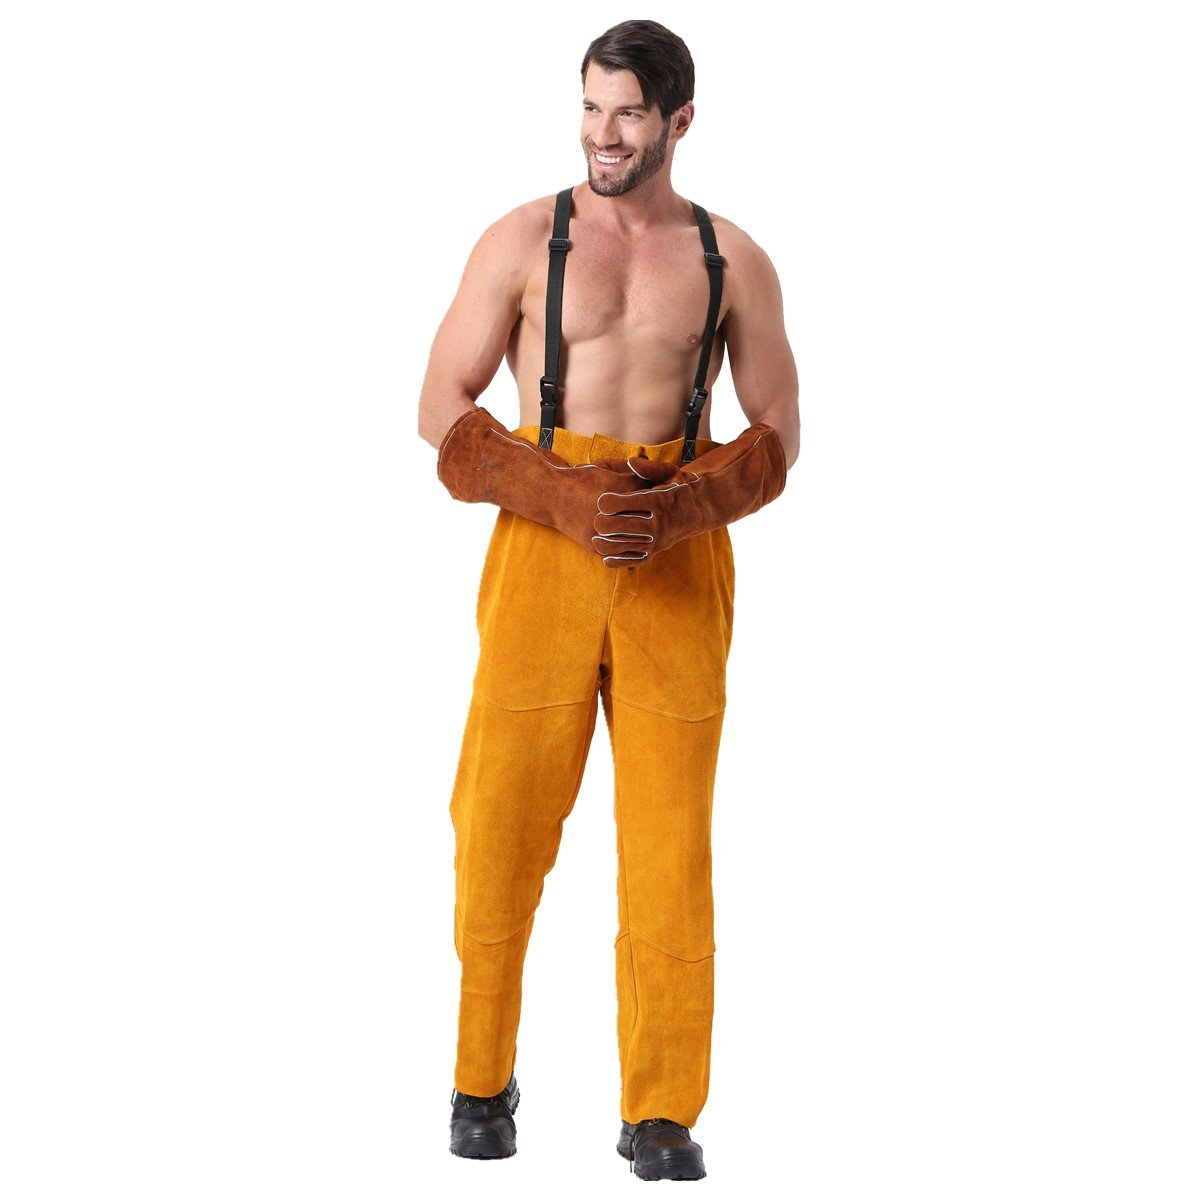 Leather Welding Pants Chaps Trousers Flame/Heat/Abrasion Resistant Cowhide Leather Worker Britches Romper for Welding Protection (XL)